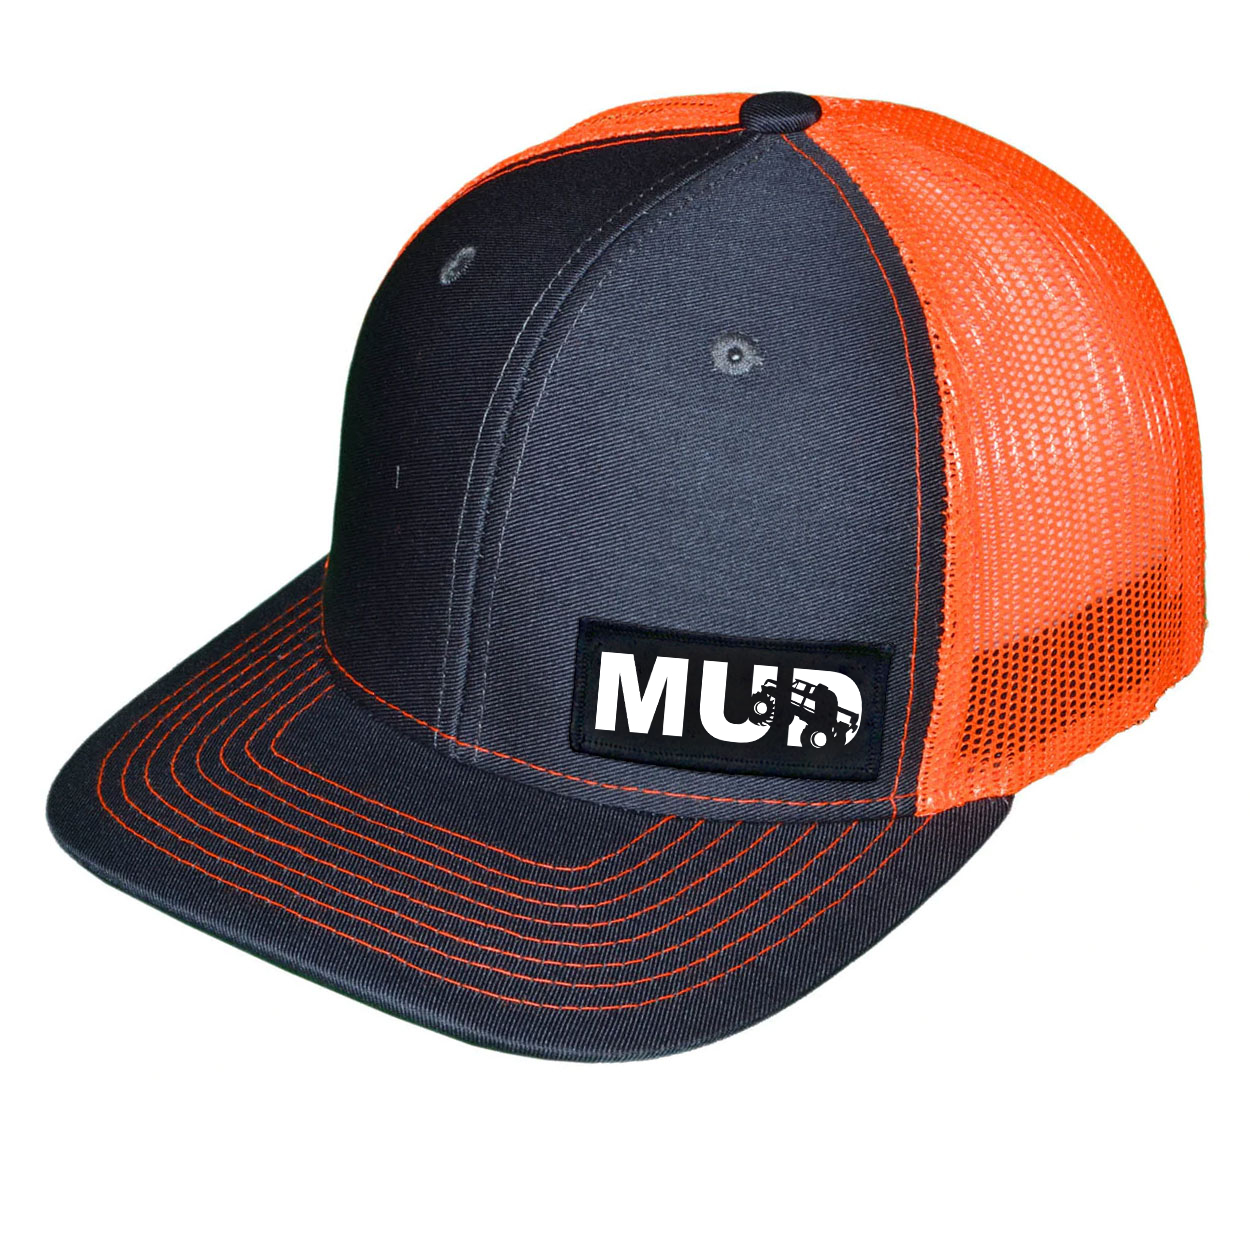 Mud Truck Logo Night Out Woven Patch Snapback Trucker Hat Dark Gray/Orange (White Logo)